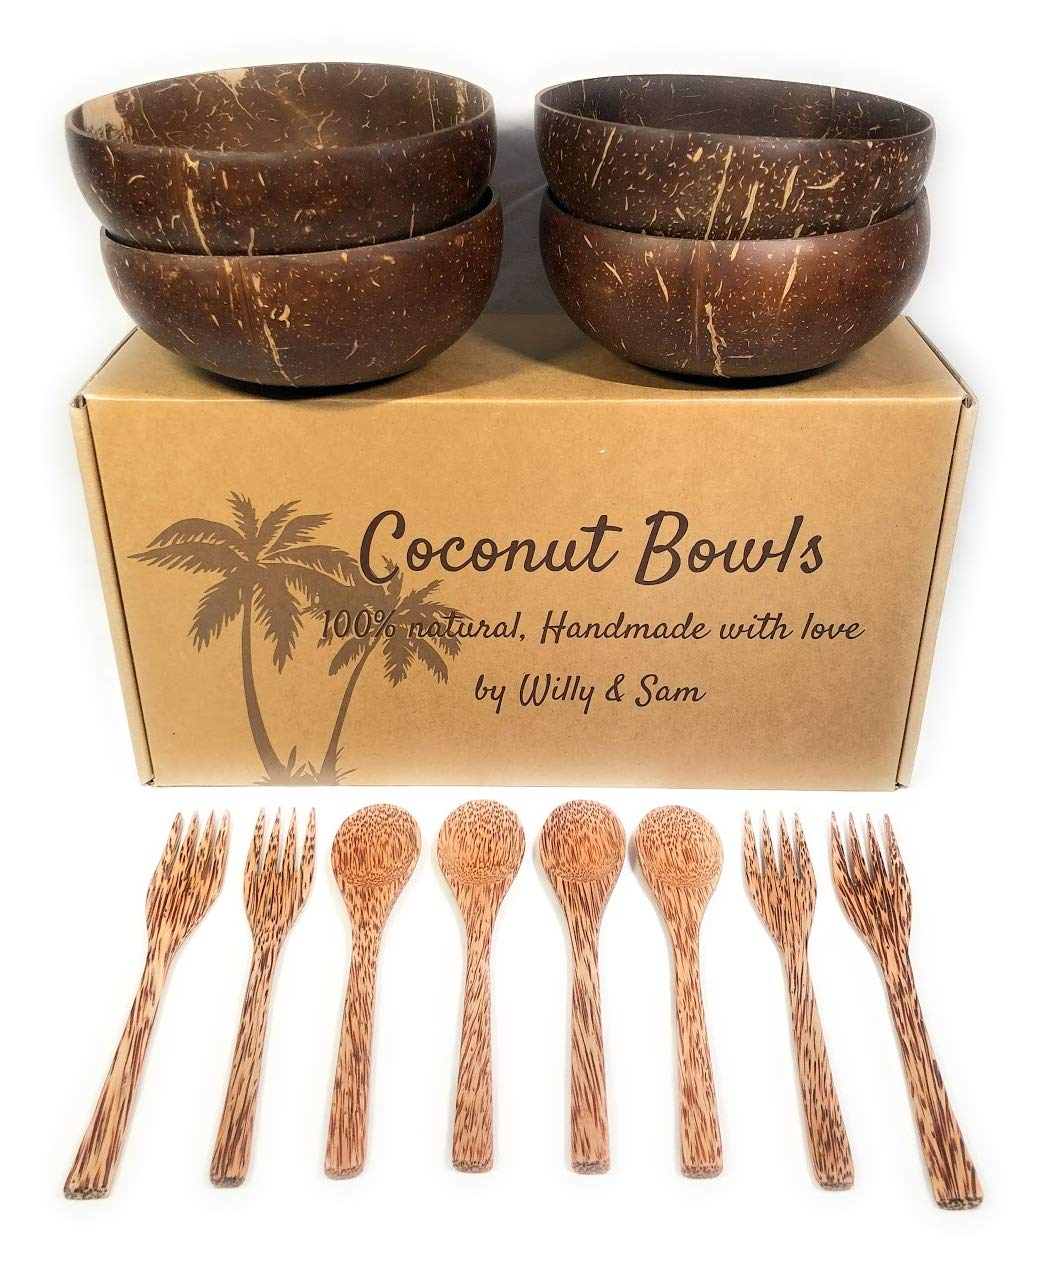 Coconut Bowl, spoon and fork 100% natural, Includes 4 Coconut Bowls + 4 Spoons + 4 Forks | Handmade with love | Ideal for making organic Breakfast, Smoothie, Salad or Buddha Bowl. Perfect Gift